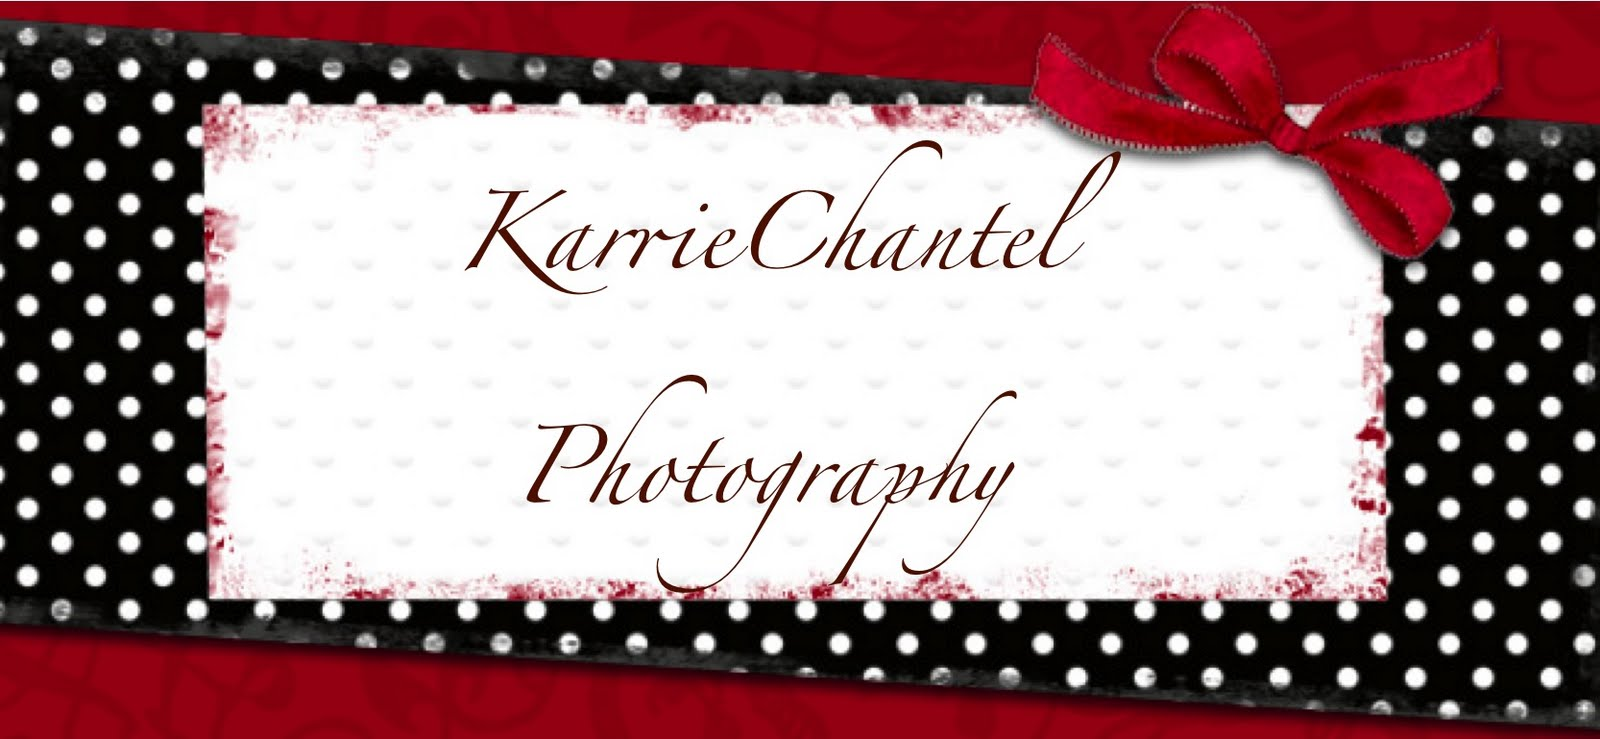 Karrie Chantel Photography